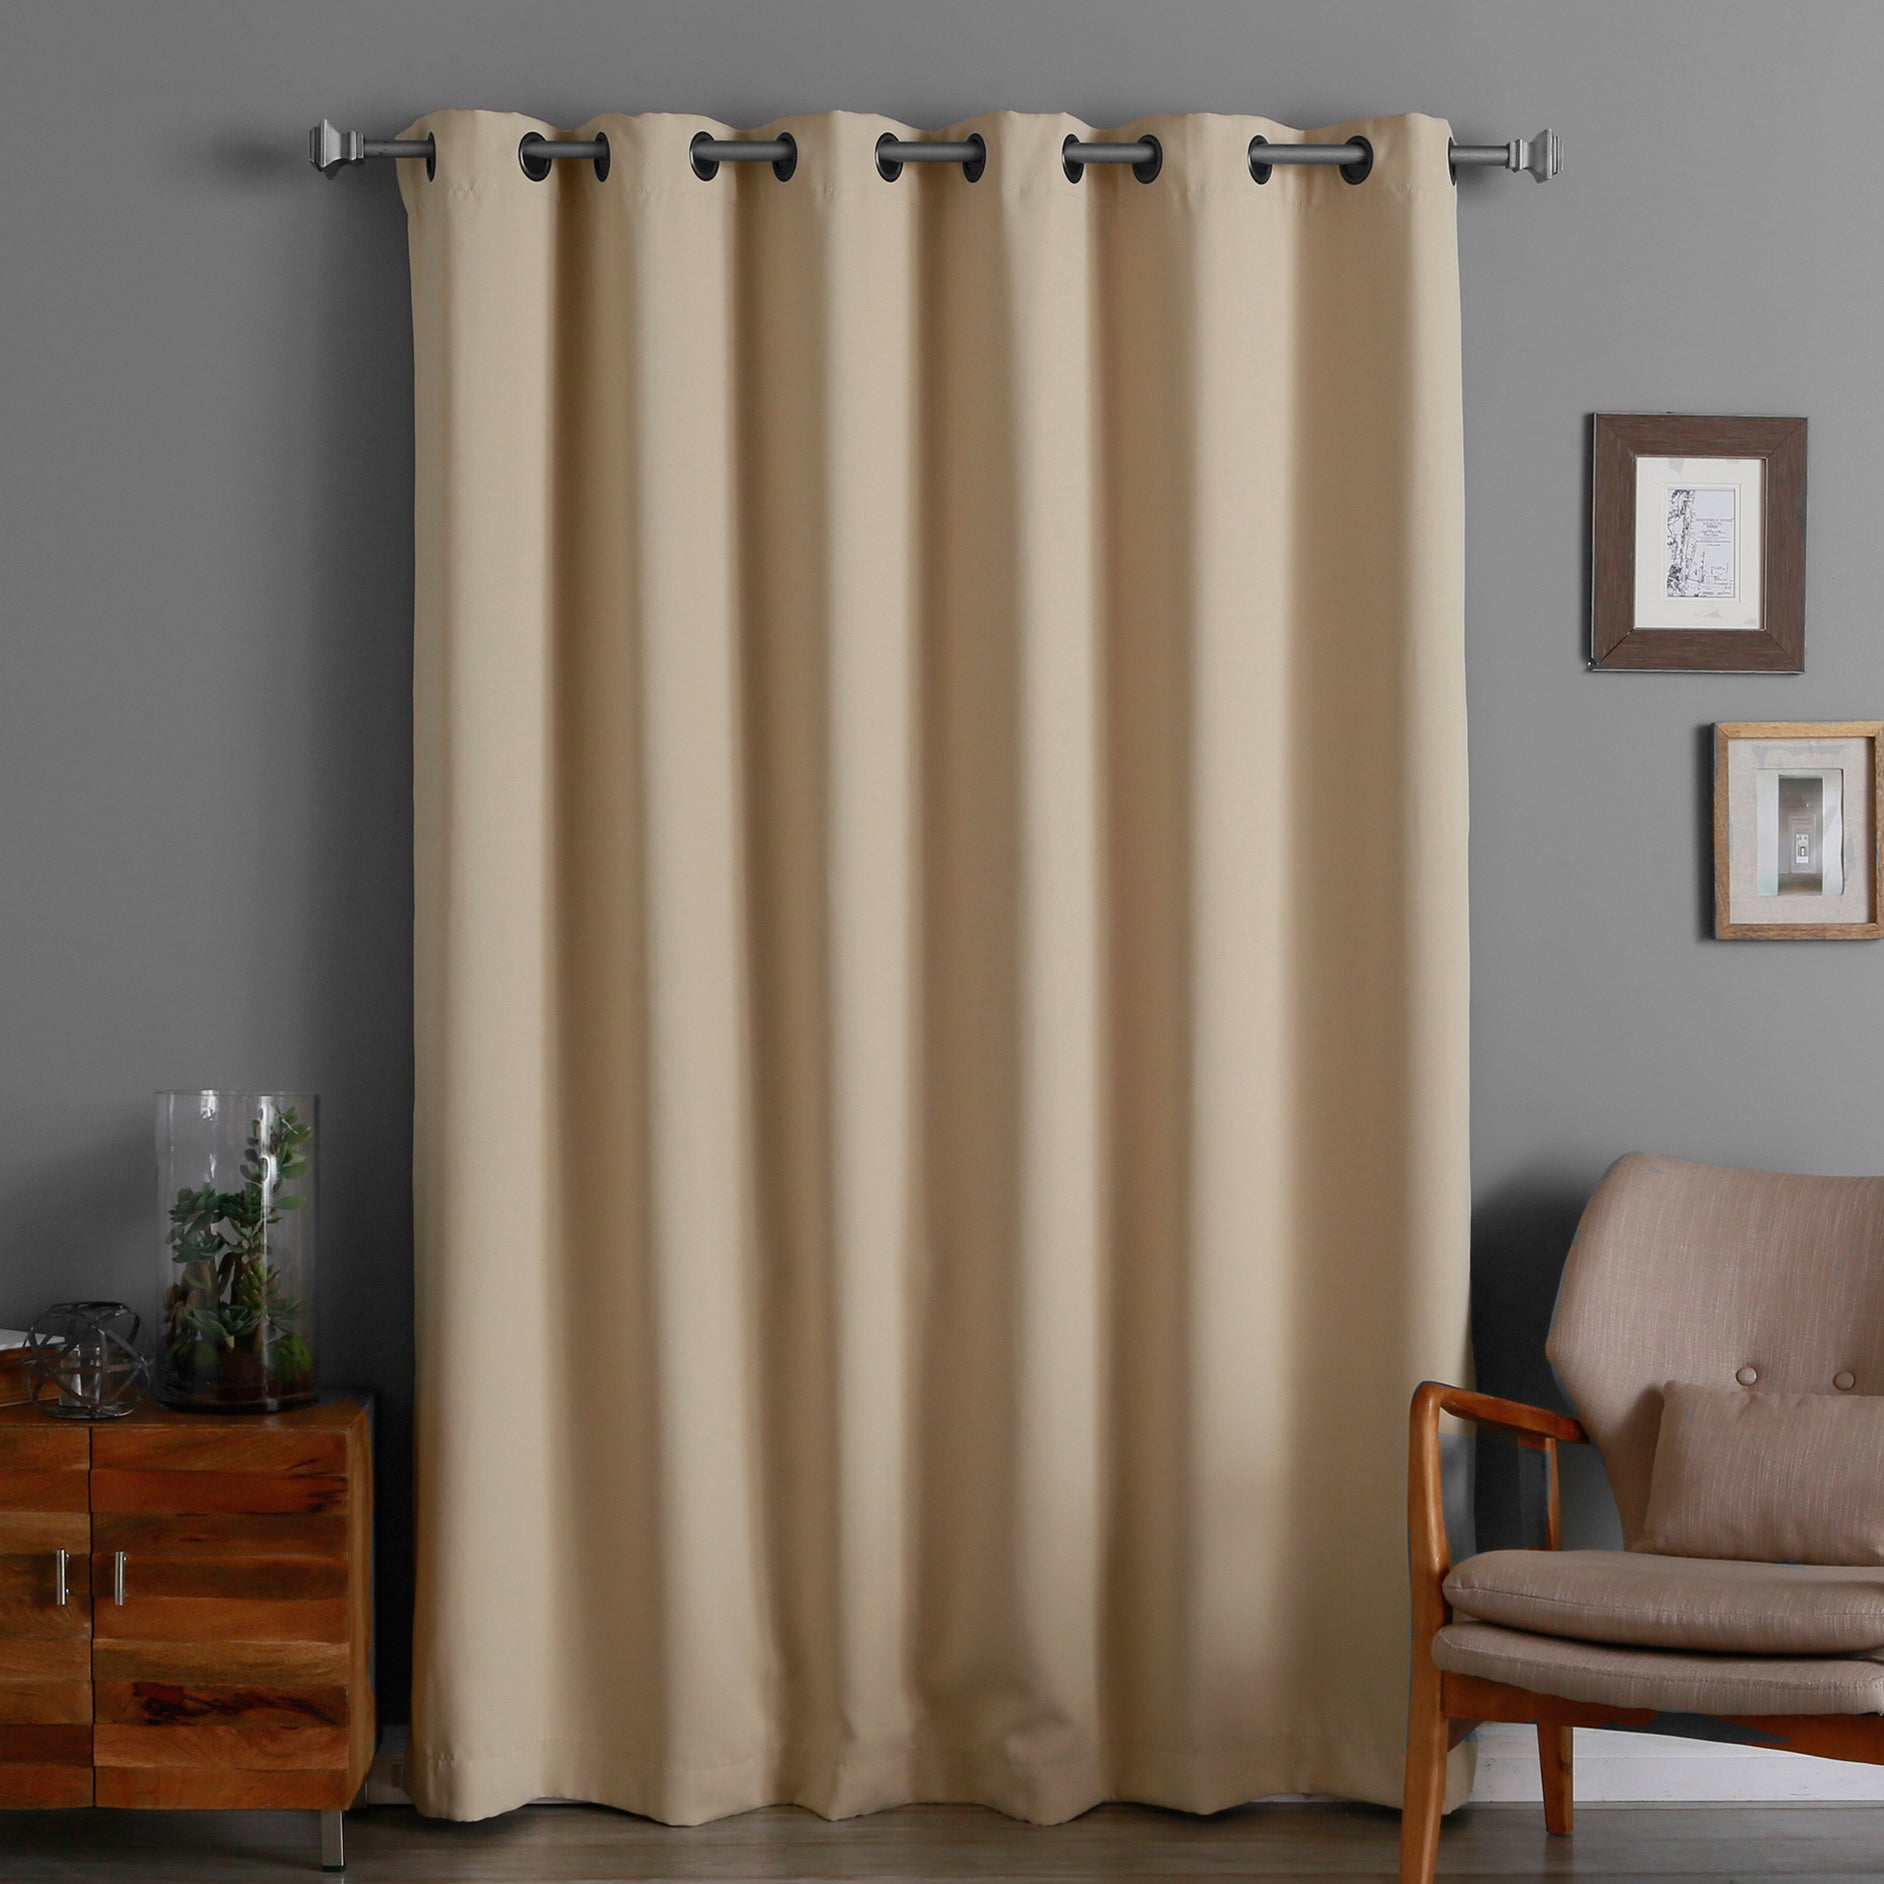 bathroom drop curtain curtains size x extra wide narrow fabric long bespoke itm width shower